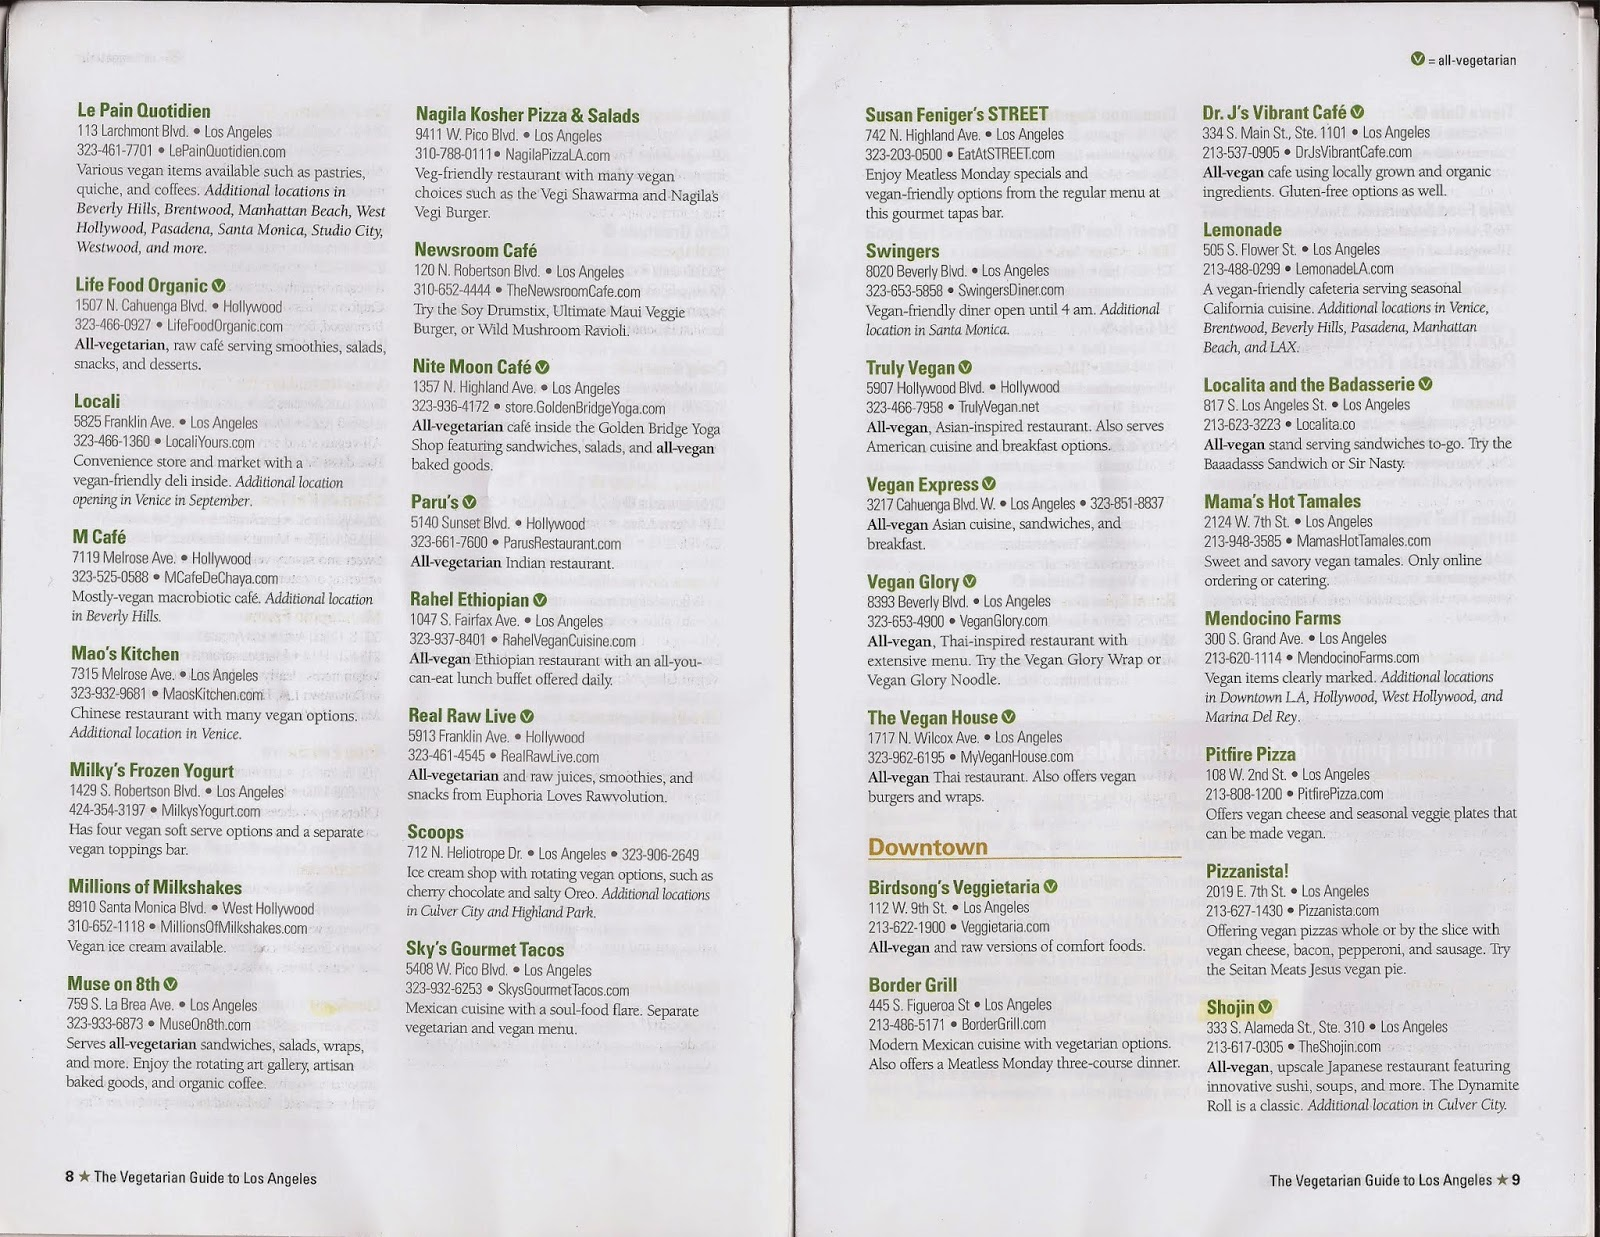 Here S A Starter List Of Restaurants The V Next To Restaurant Means Vegan Friendly Highlighted I Ve Been There And Loved It